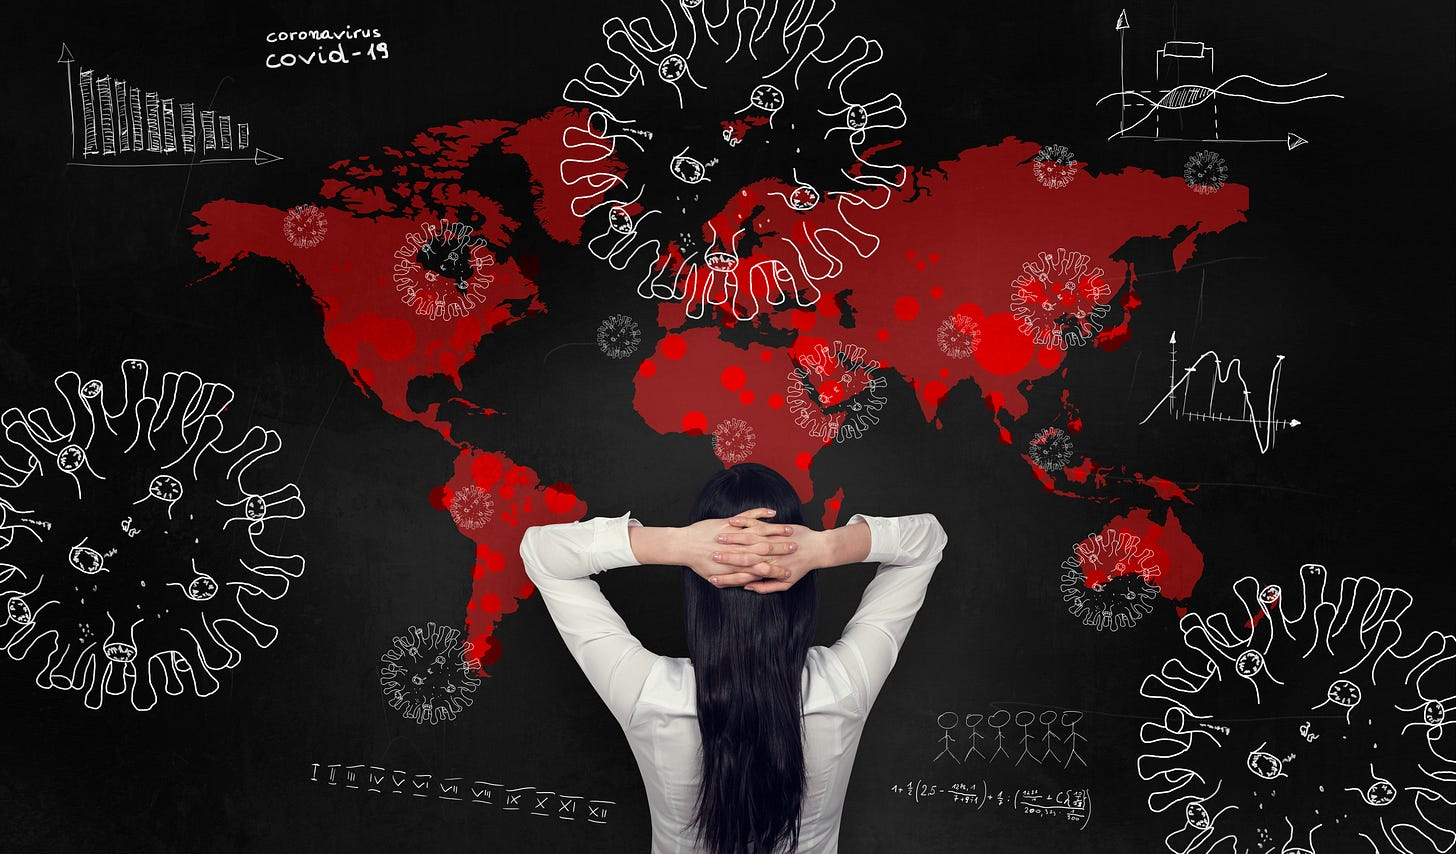 Woman with hands on head in despair, facing a red, world map with viruses floating around.